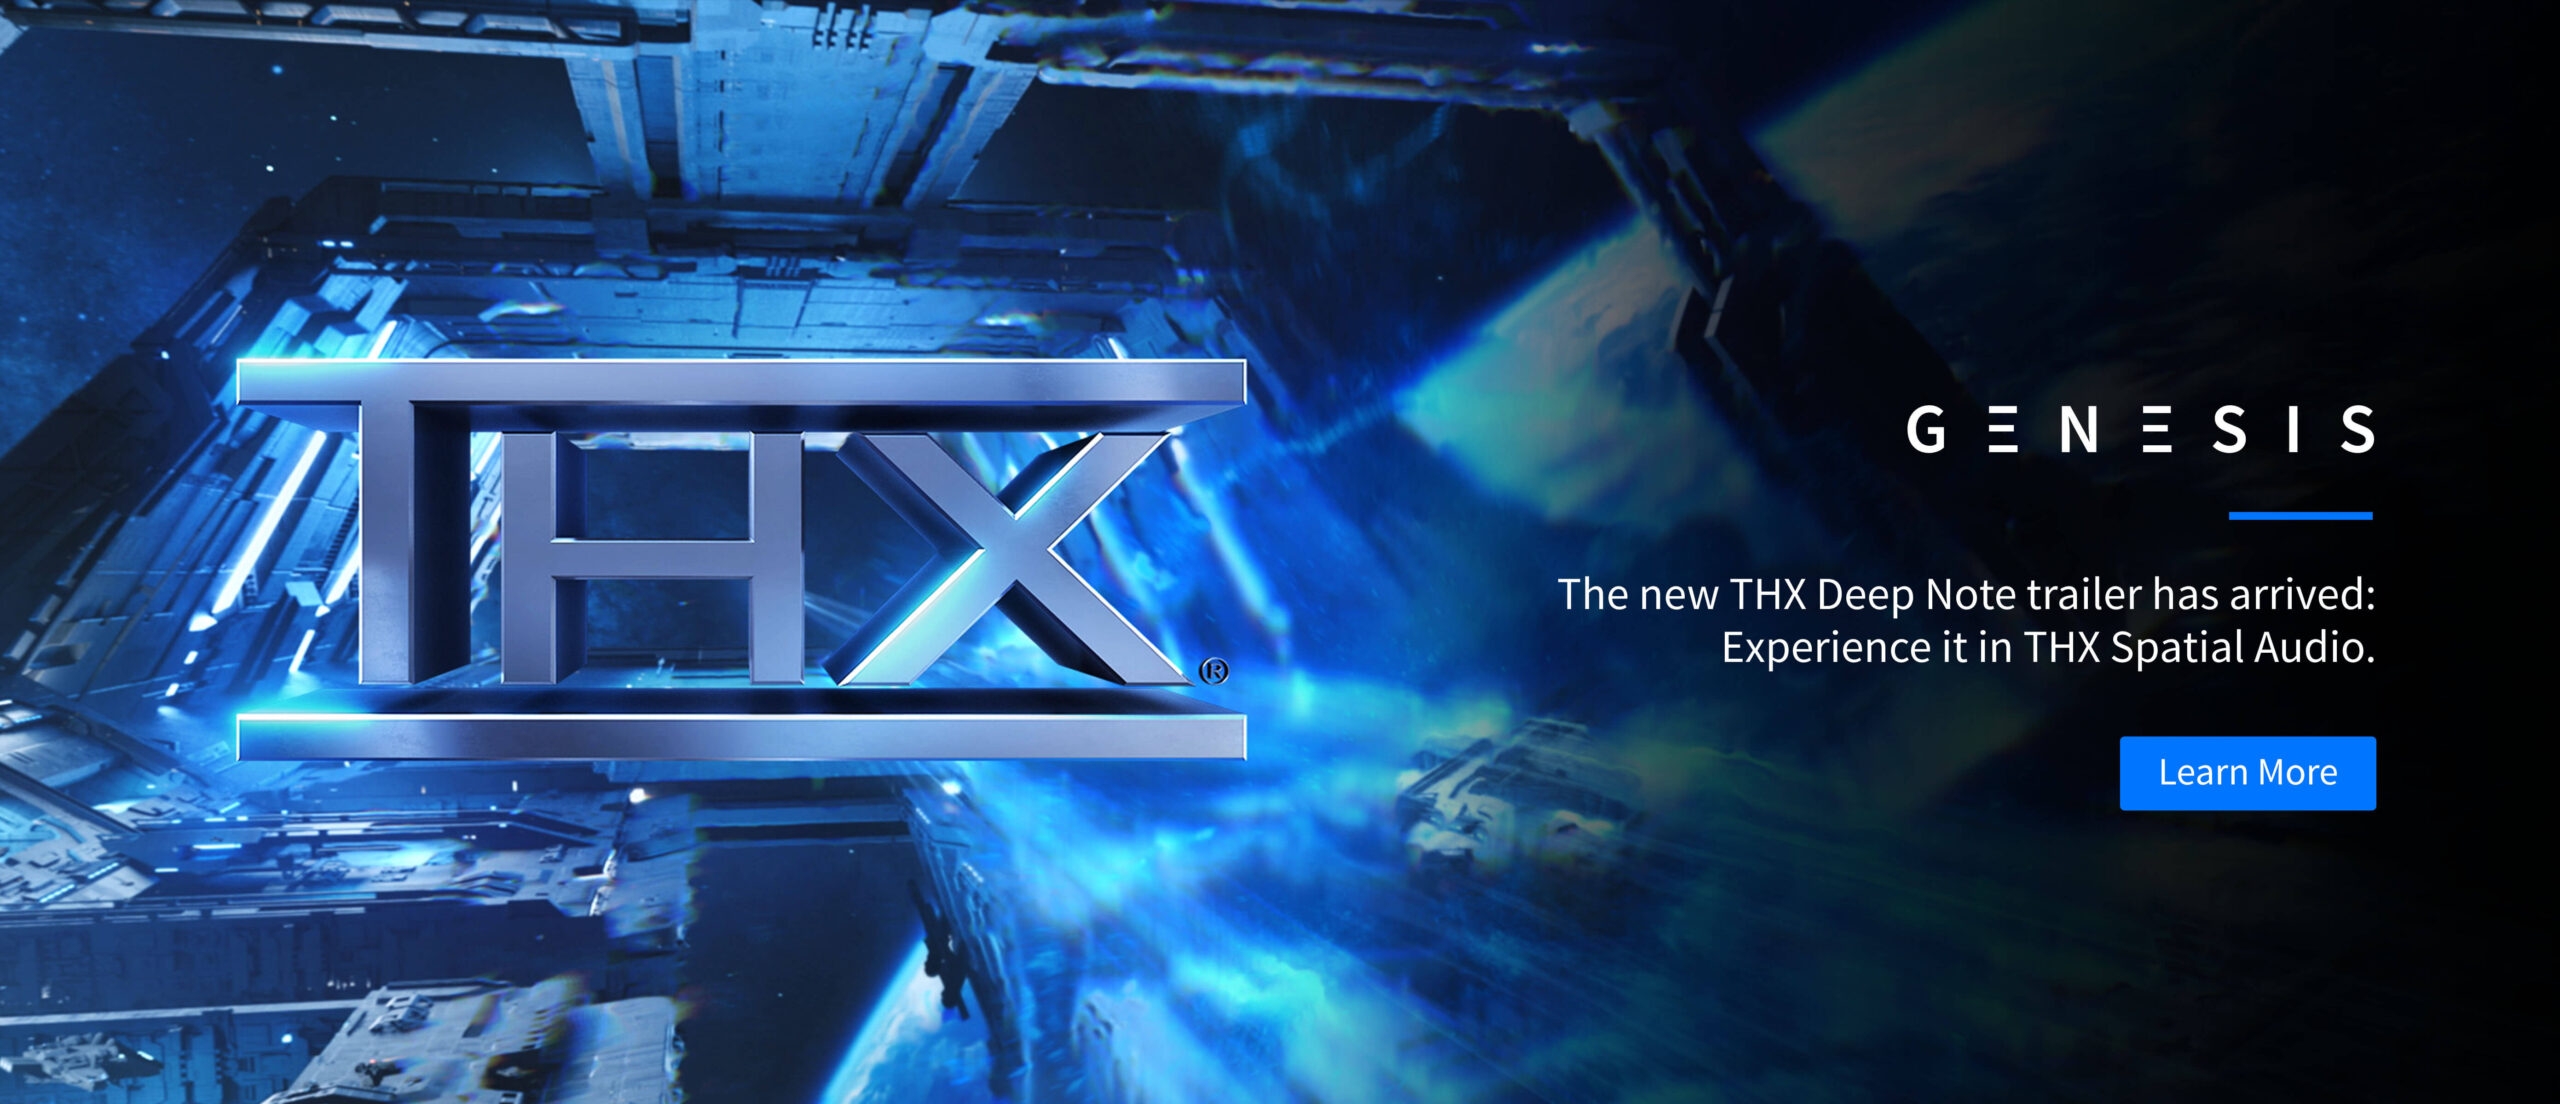 THX Genesis Trailer Web Banner